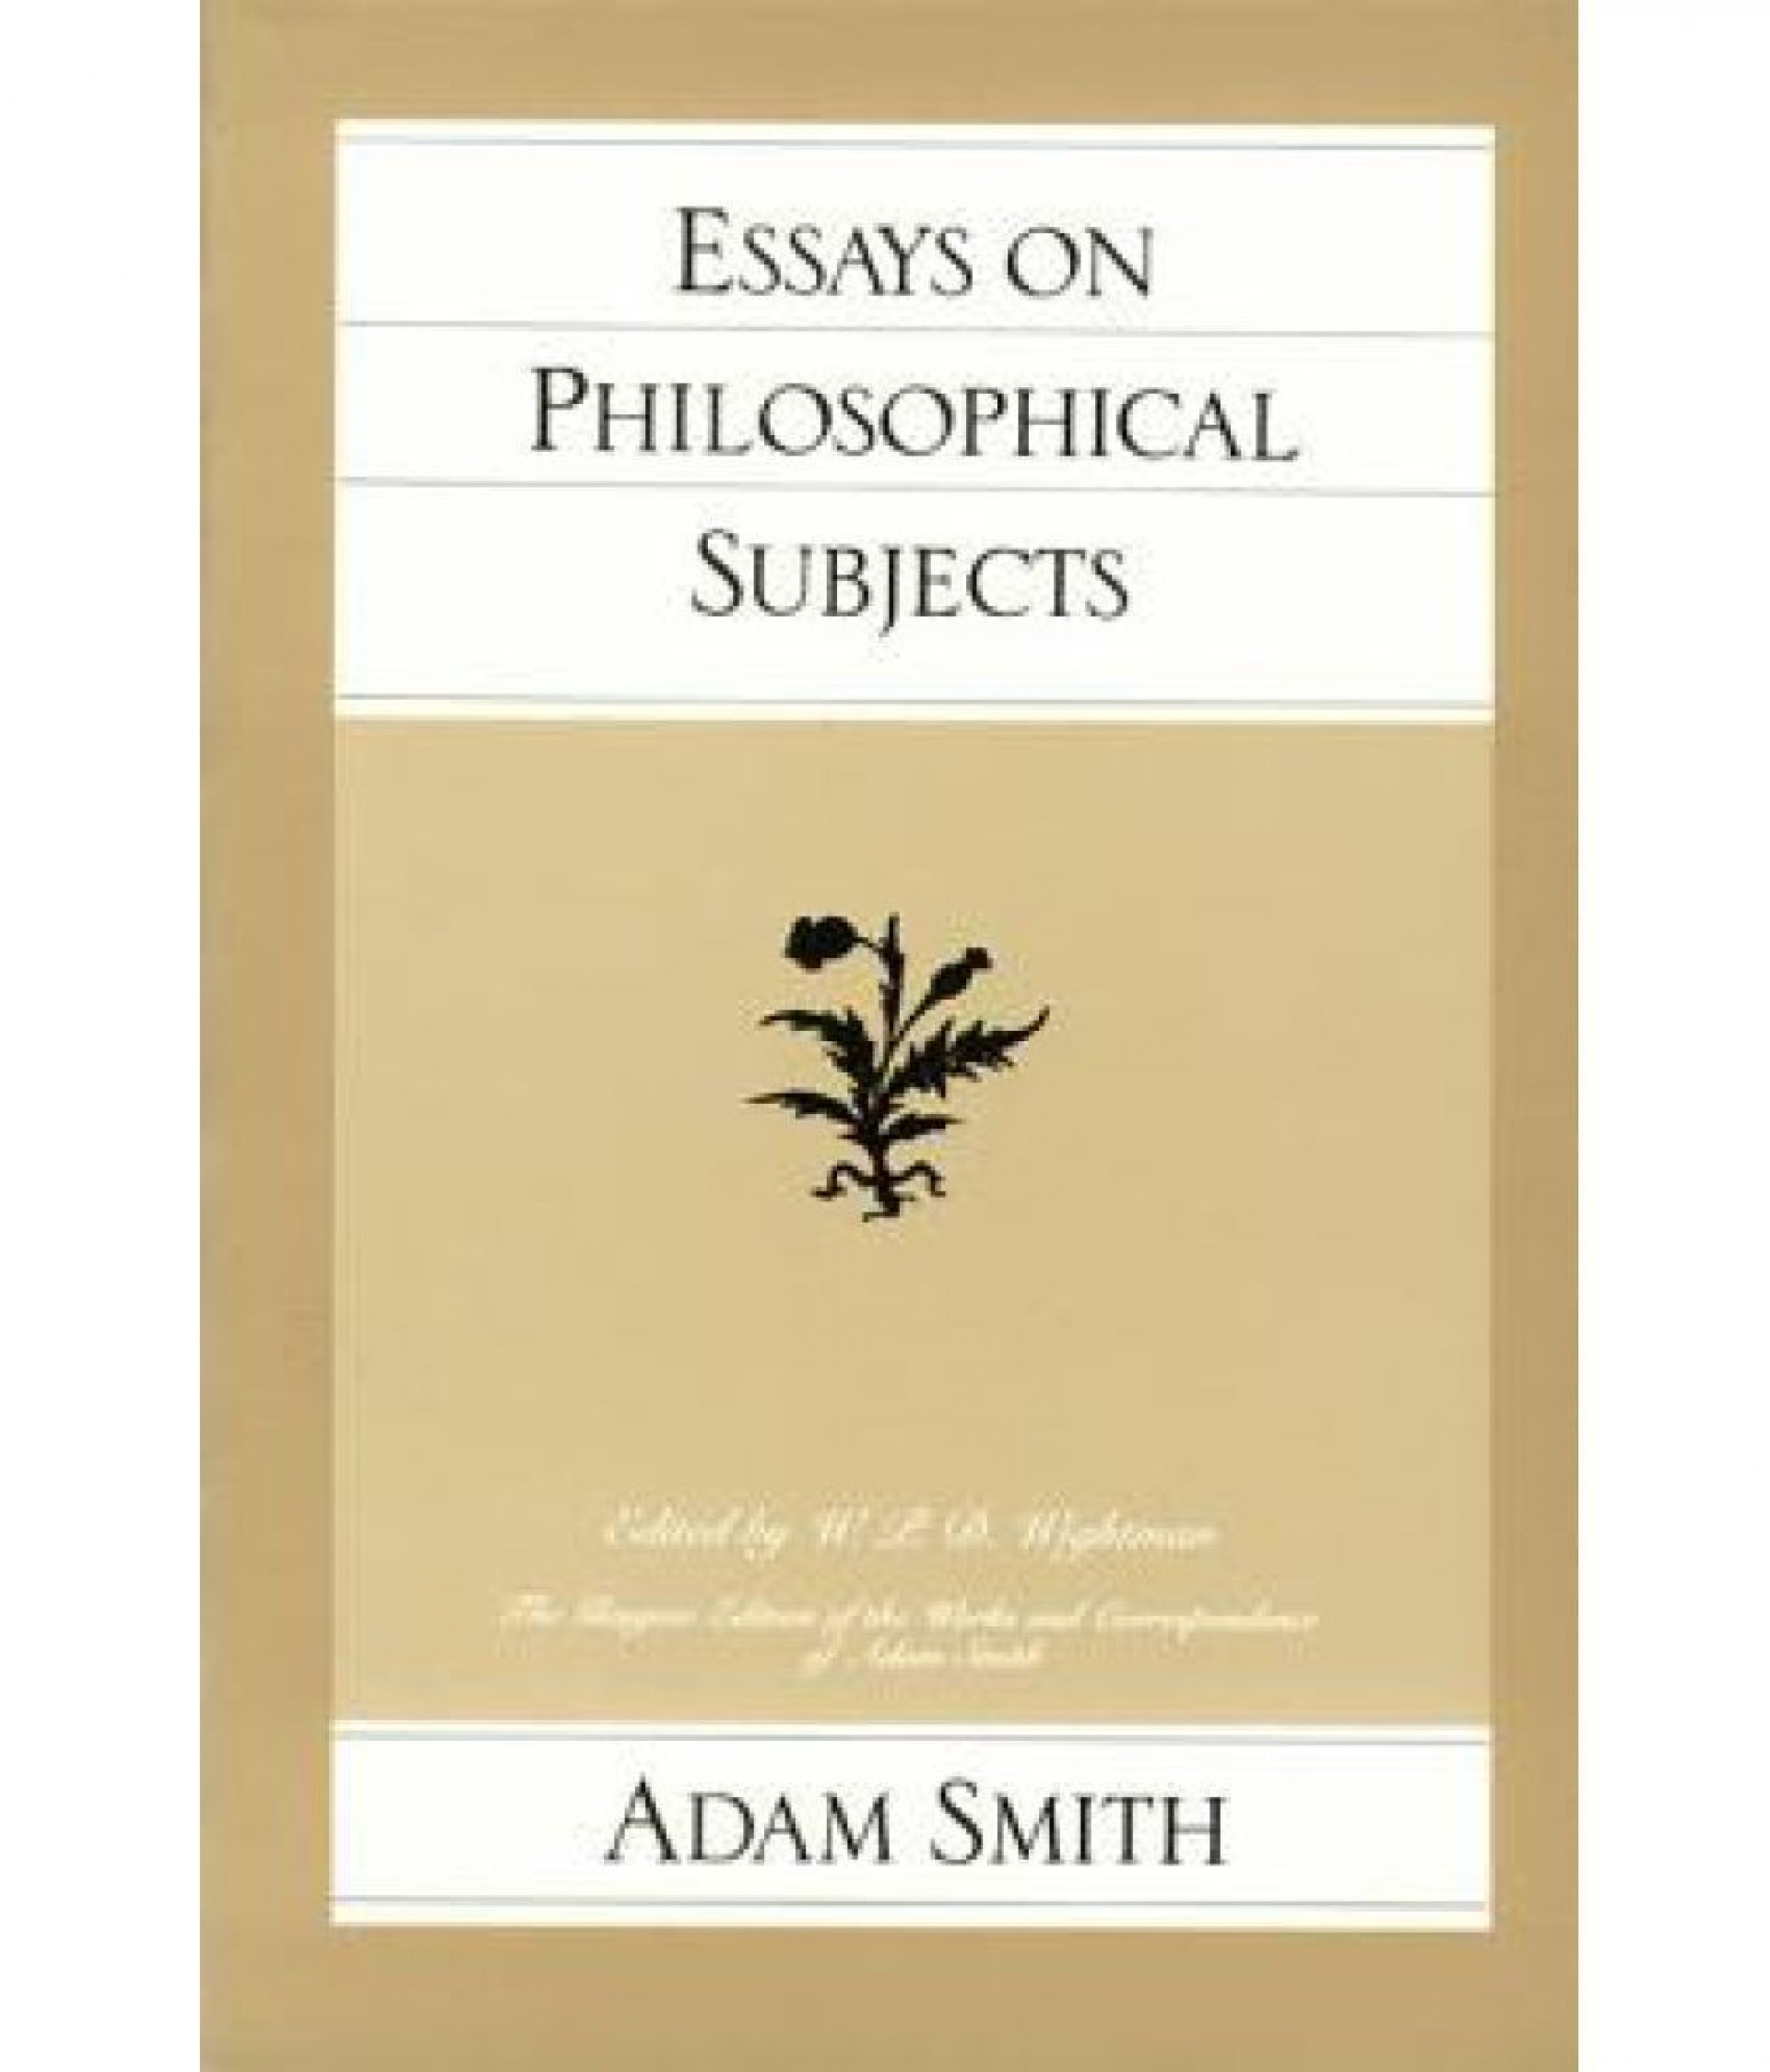 011 Essays On Philosophical Subjects Sdl274222681 Essay Best Summary Adam Smith 1920